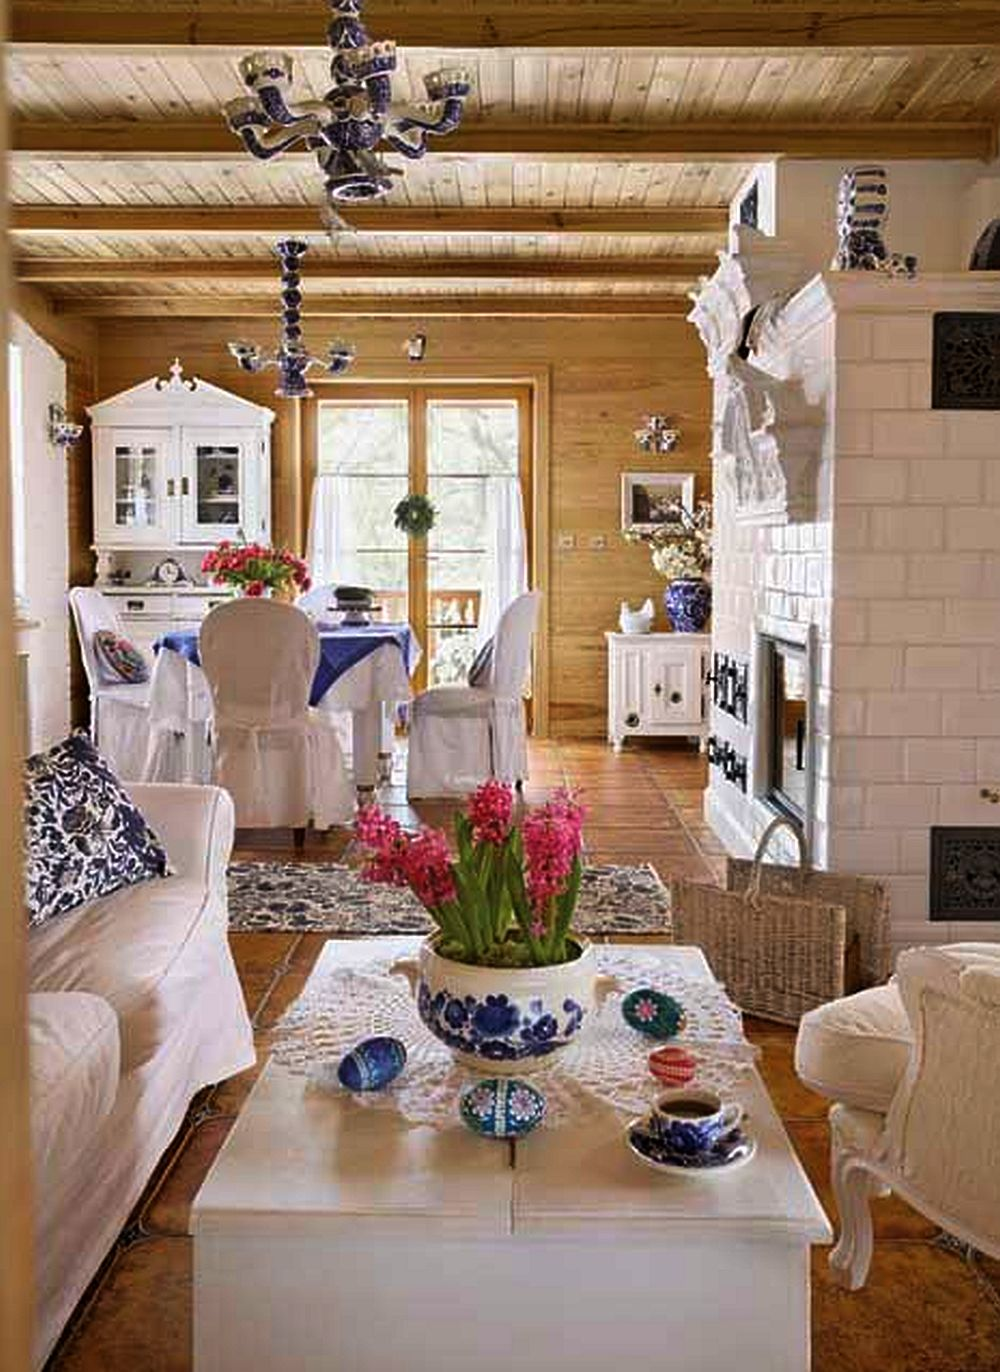 adelaparvu.com about rustic house in white and blue Photo Aneta Tryczynska(4)